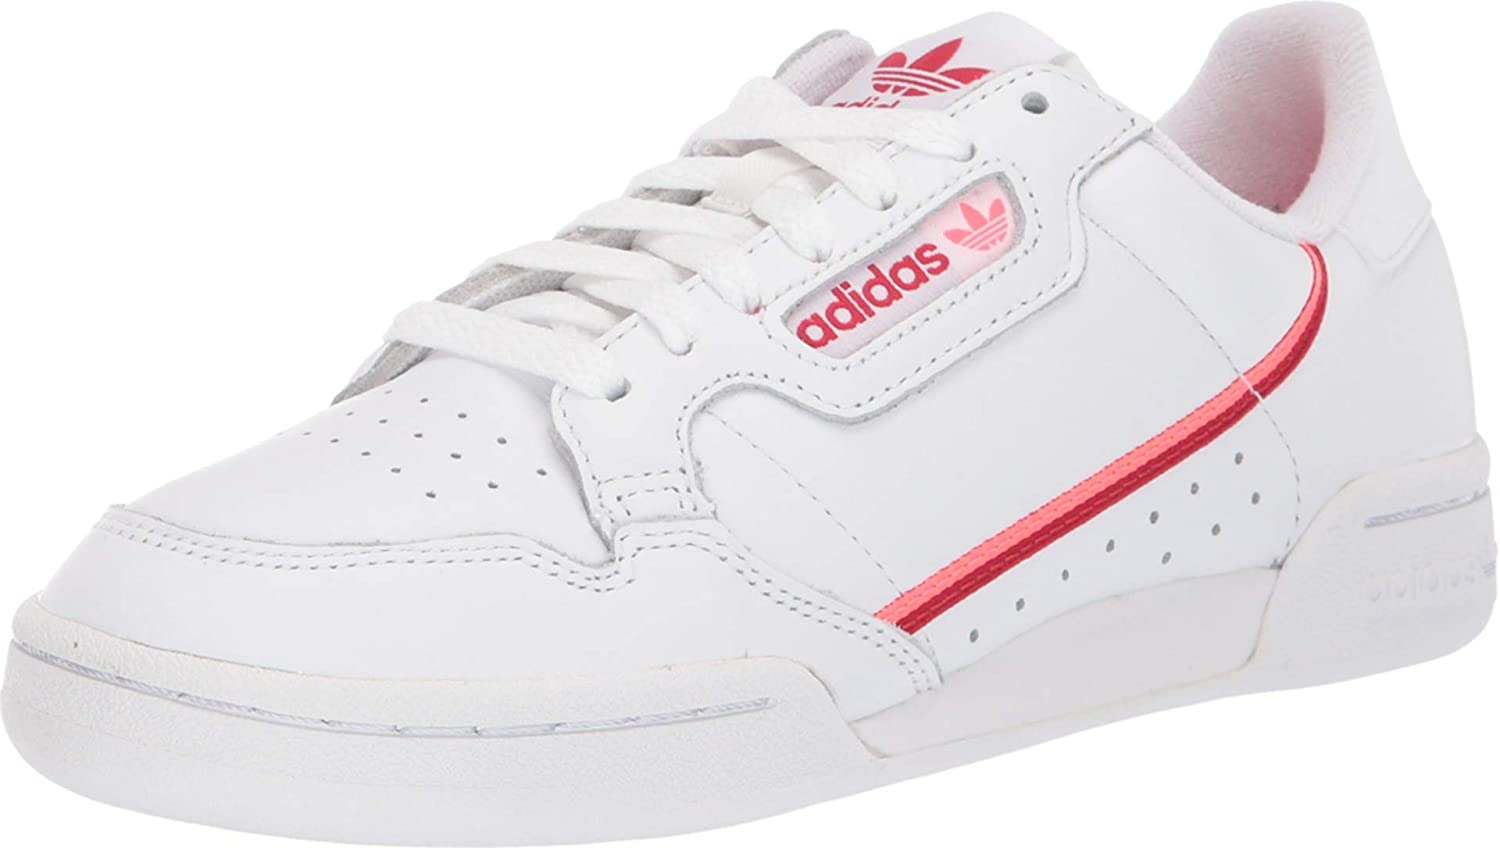 Inscribirse Frente al mar semestre  Amazon.com | adidas Womens Continental 80 Lace Up Sneakers Shoes Casual -  White | Shoes